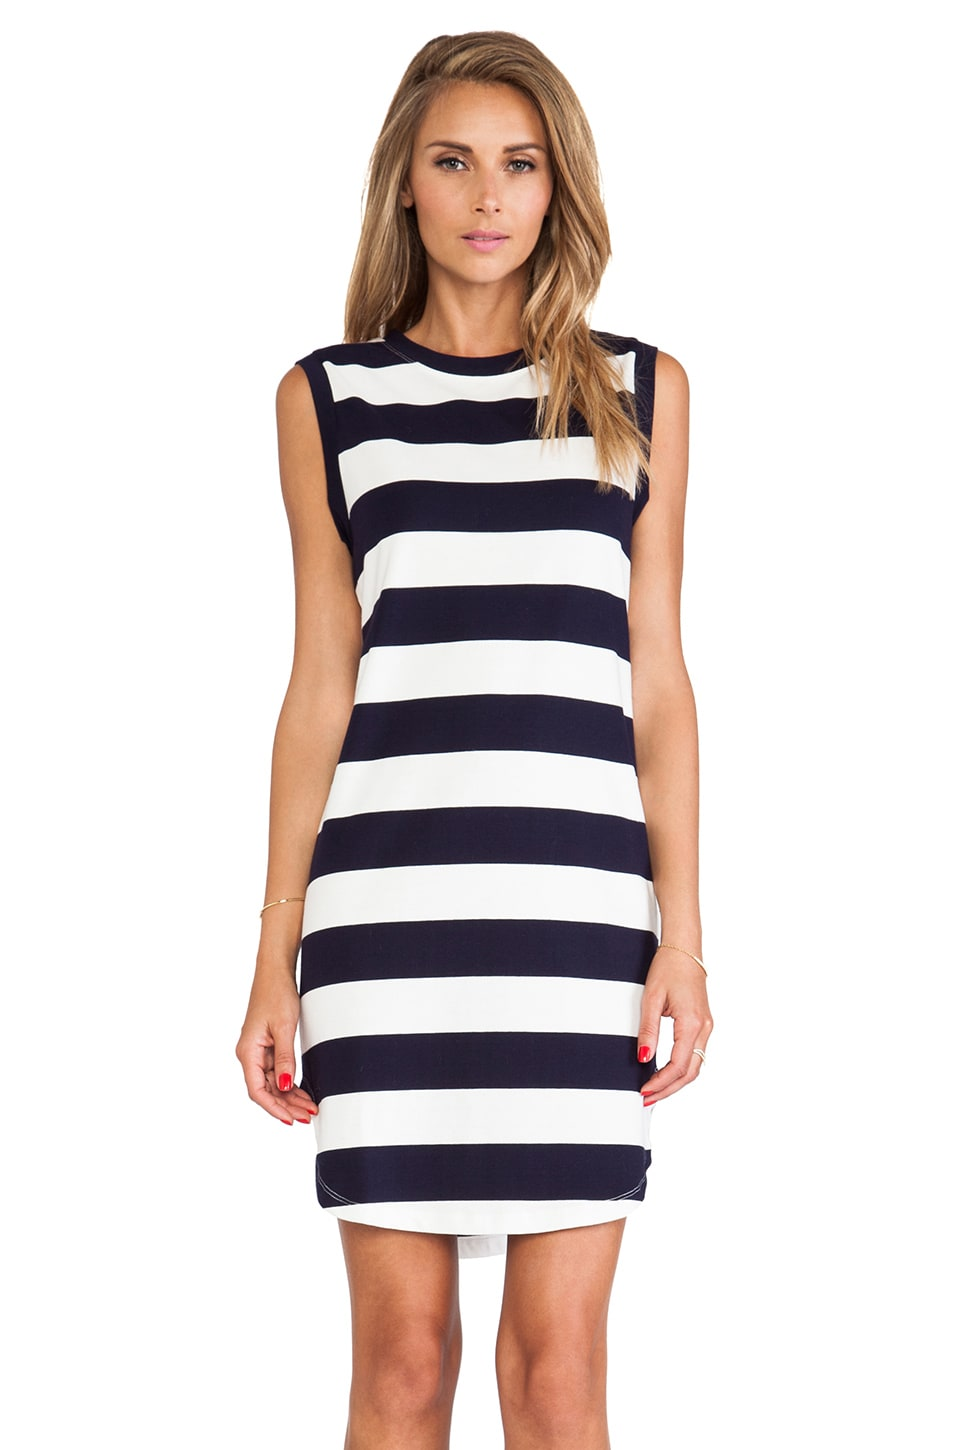 JAGGAR JAGGER Explorer Midi Dress in Navy & White Stripe